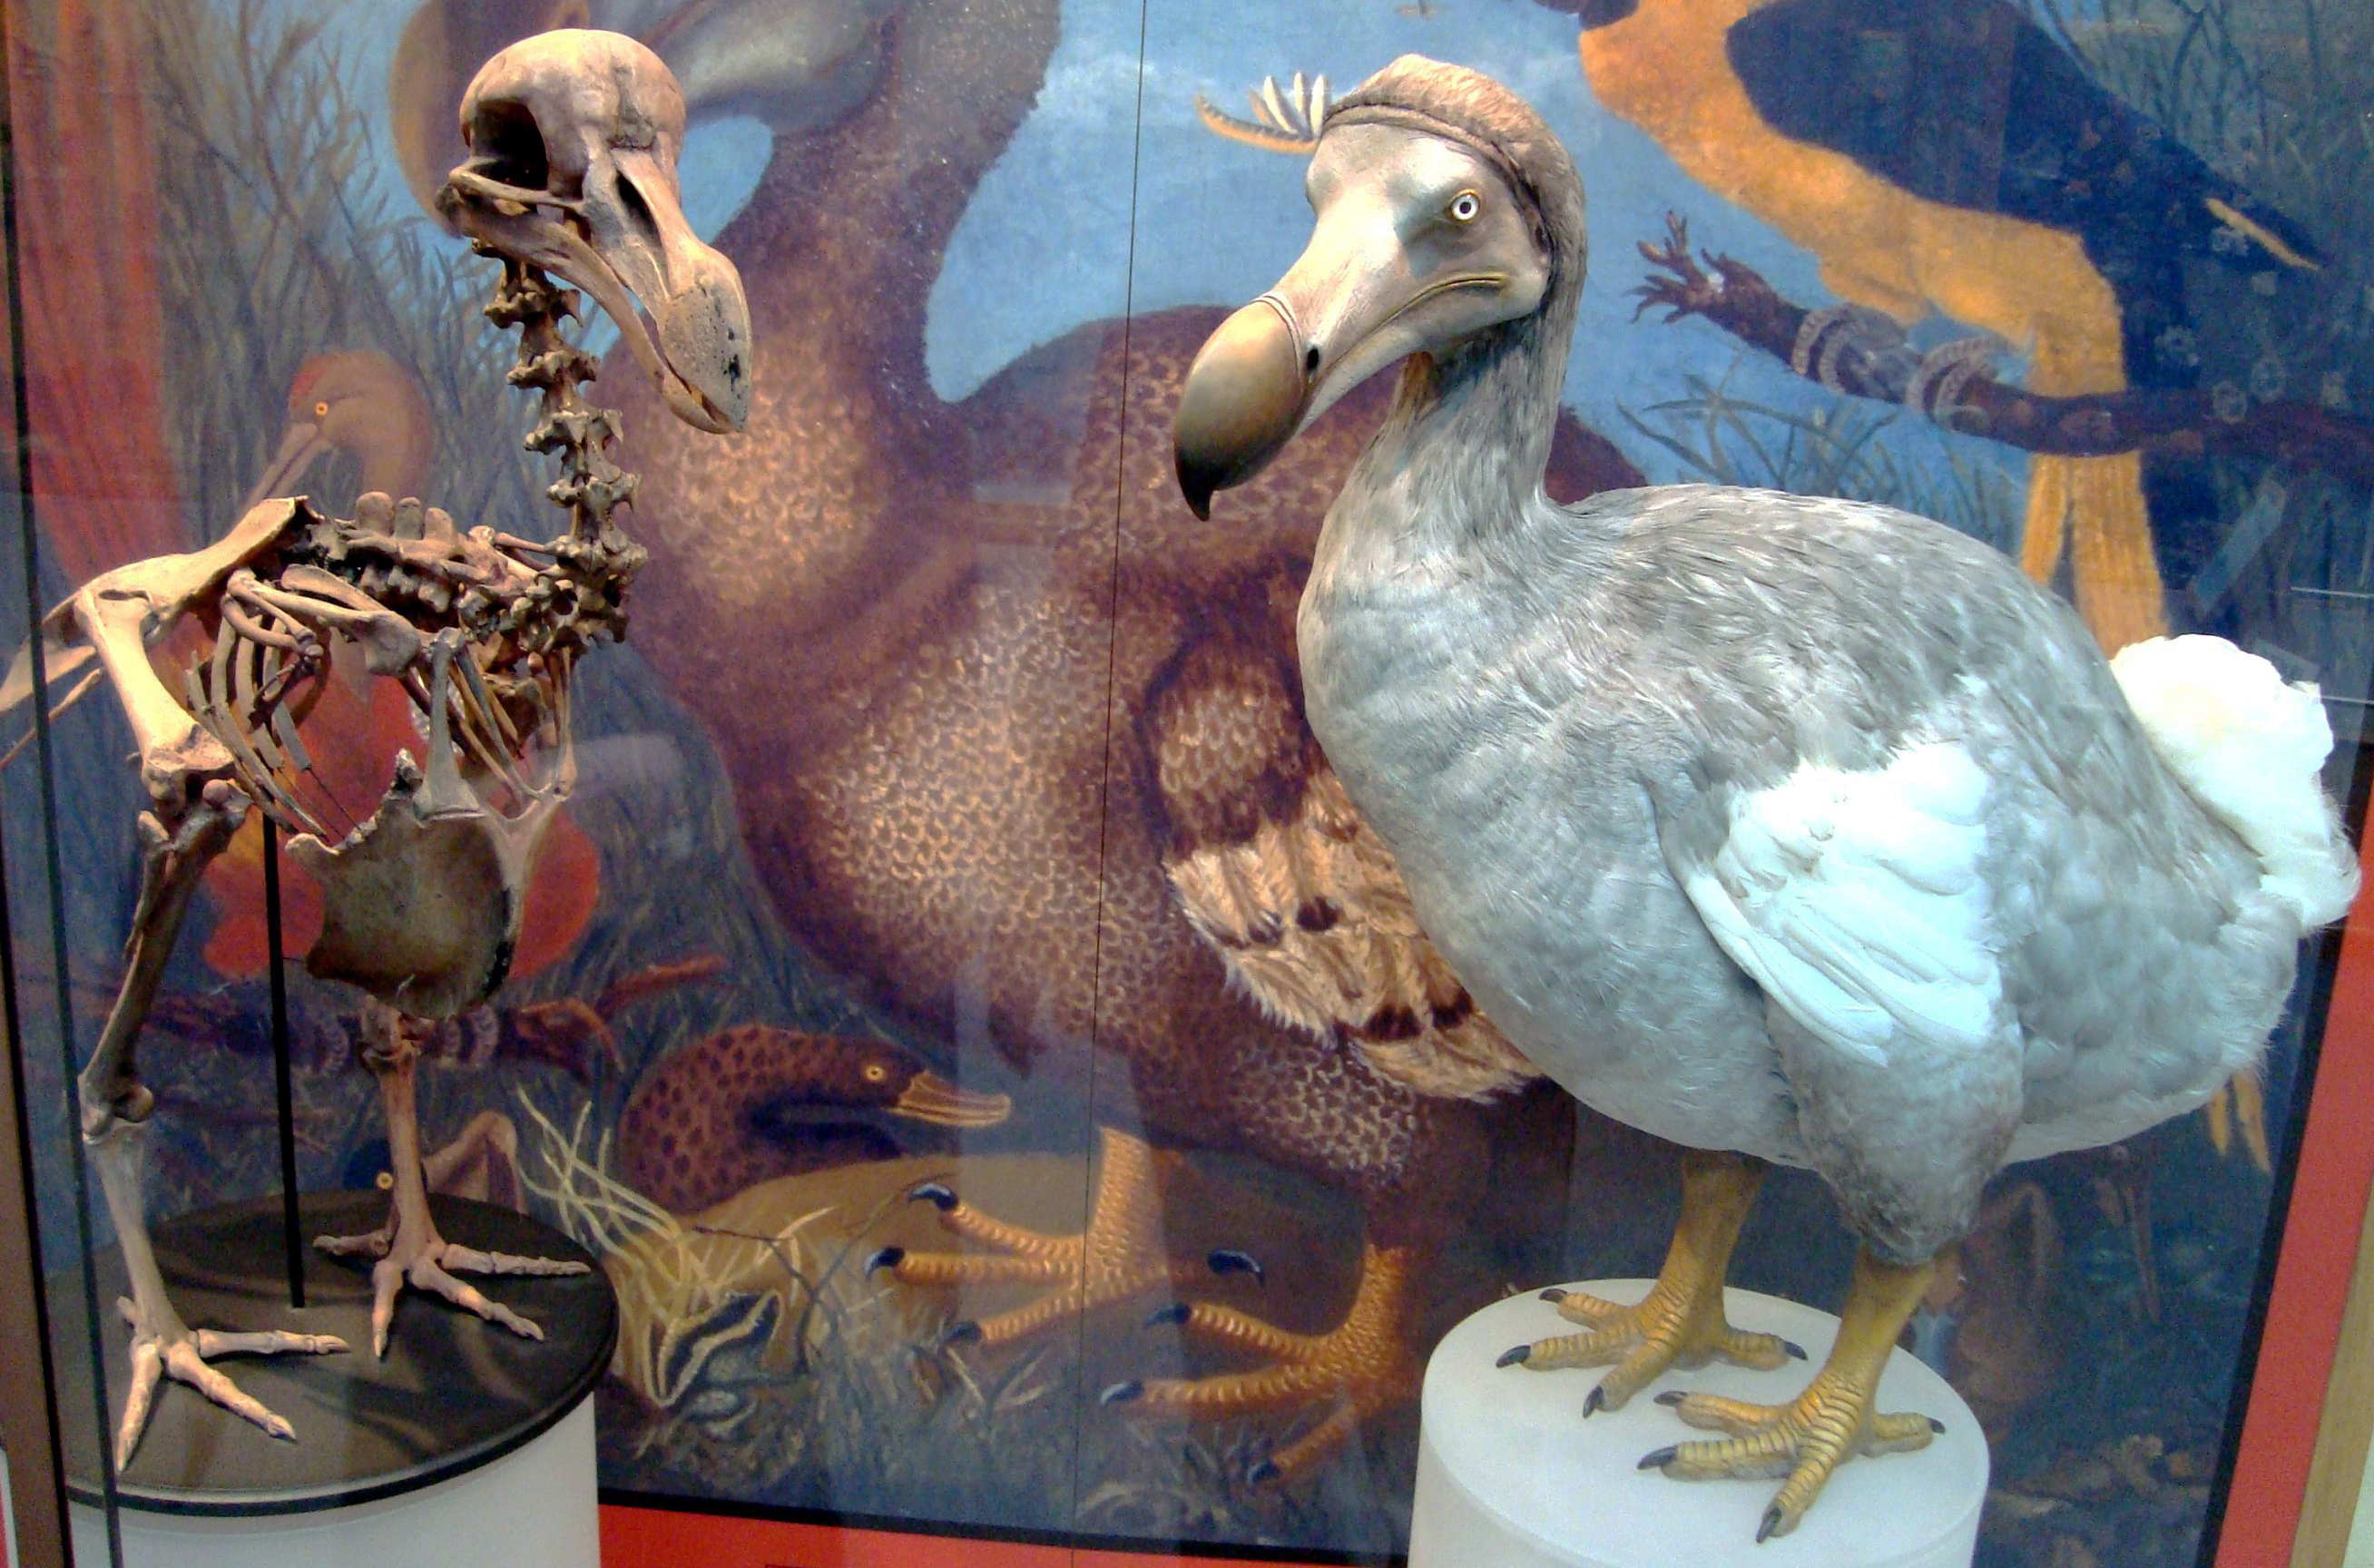 http://upload.wikimedia.org/wikipedia/commons/5/50/Oxford_Dodo_display.jpg